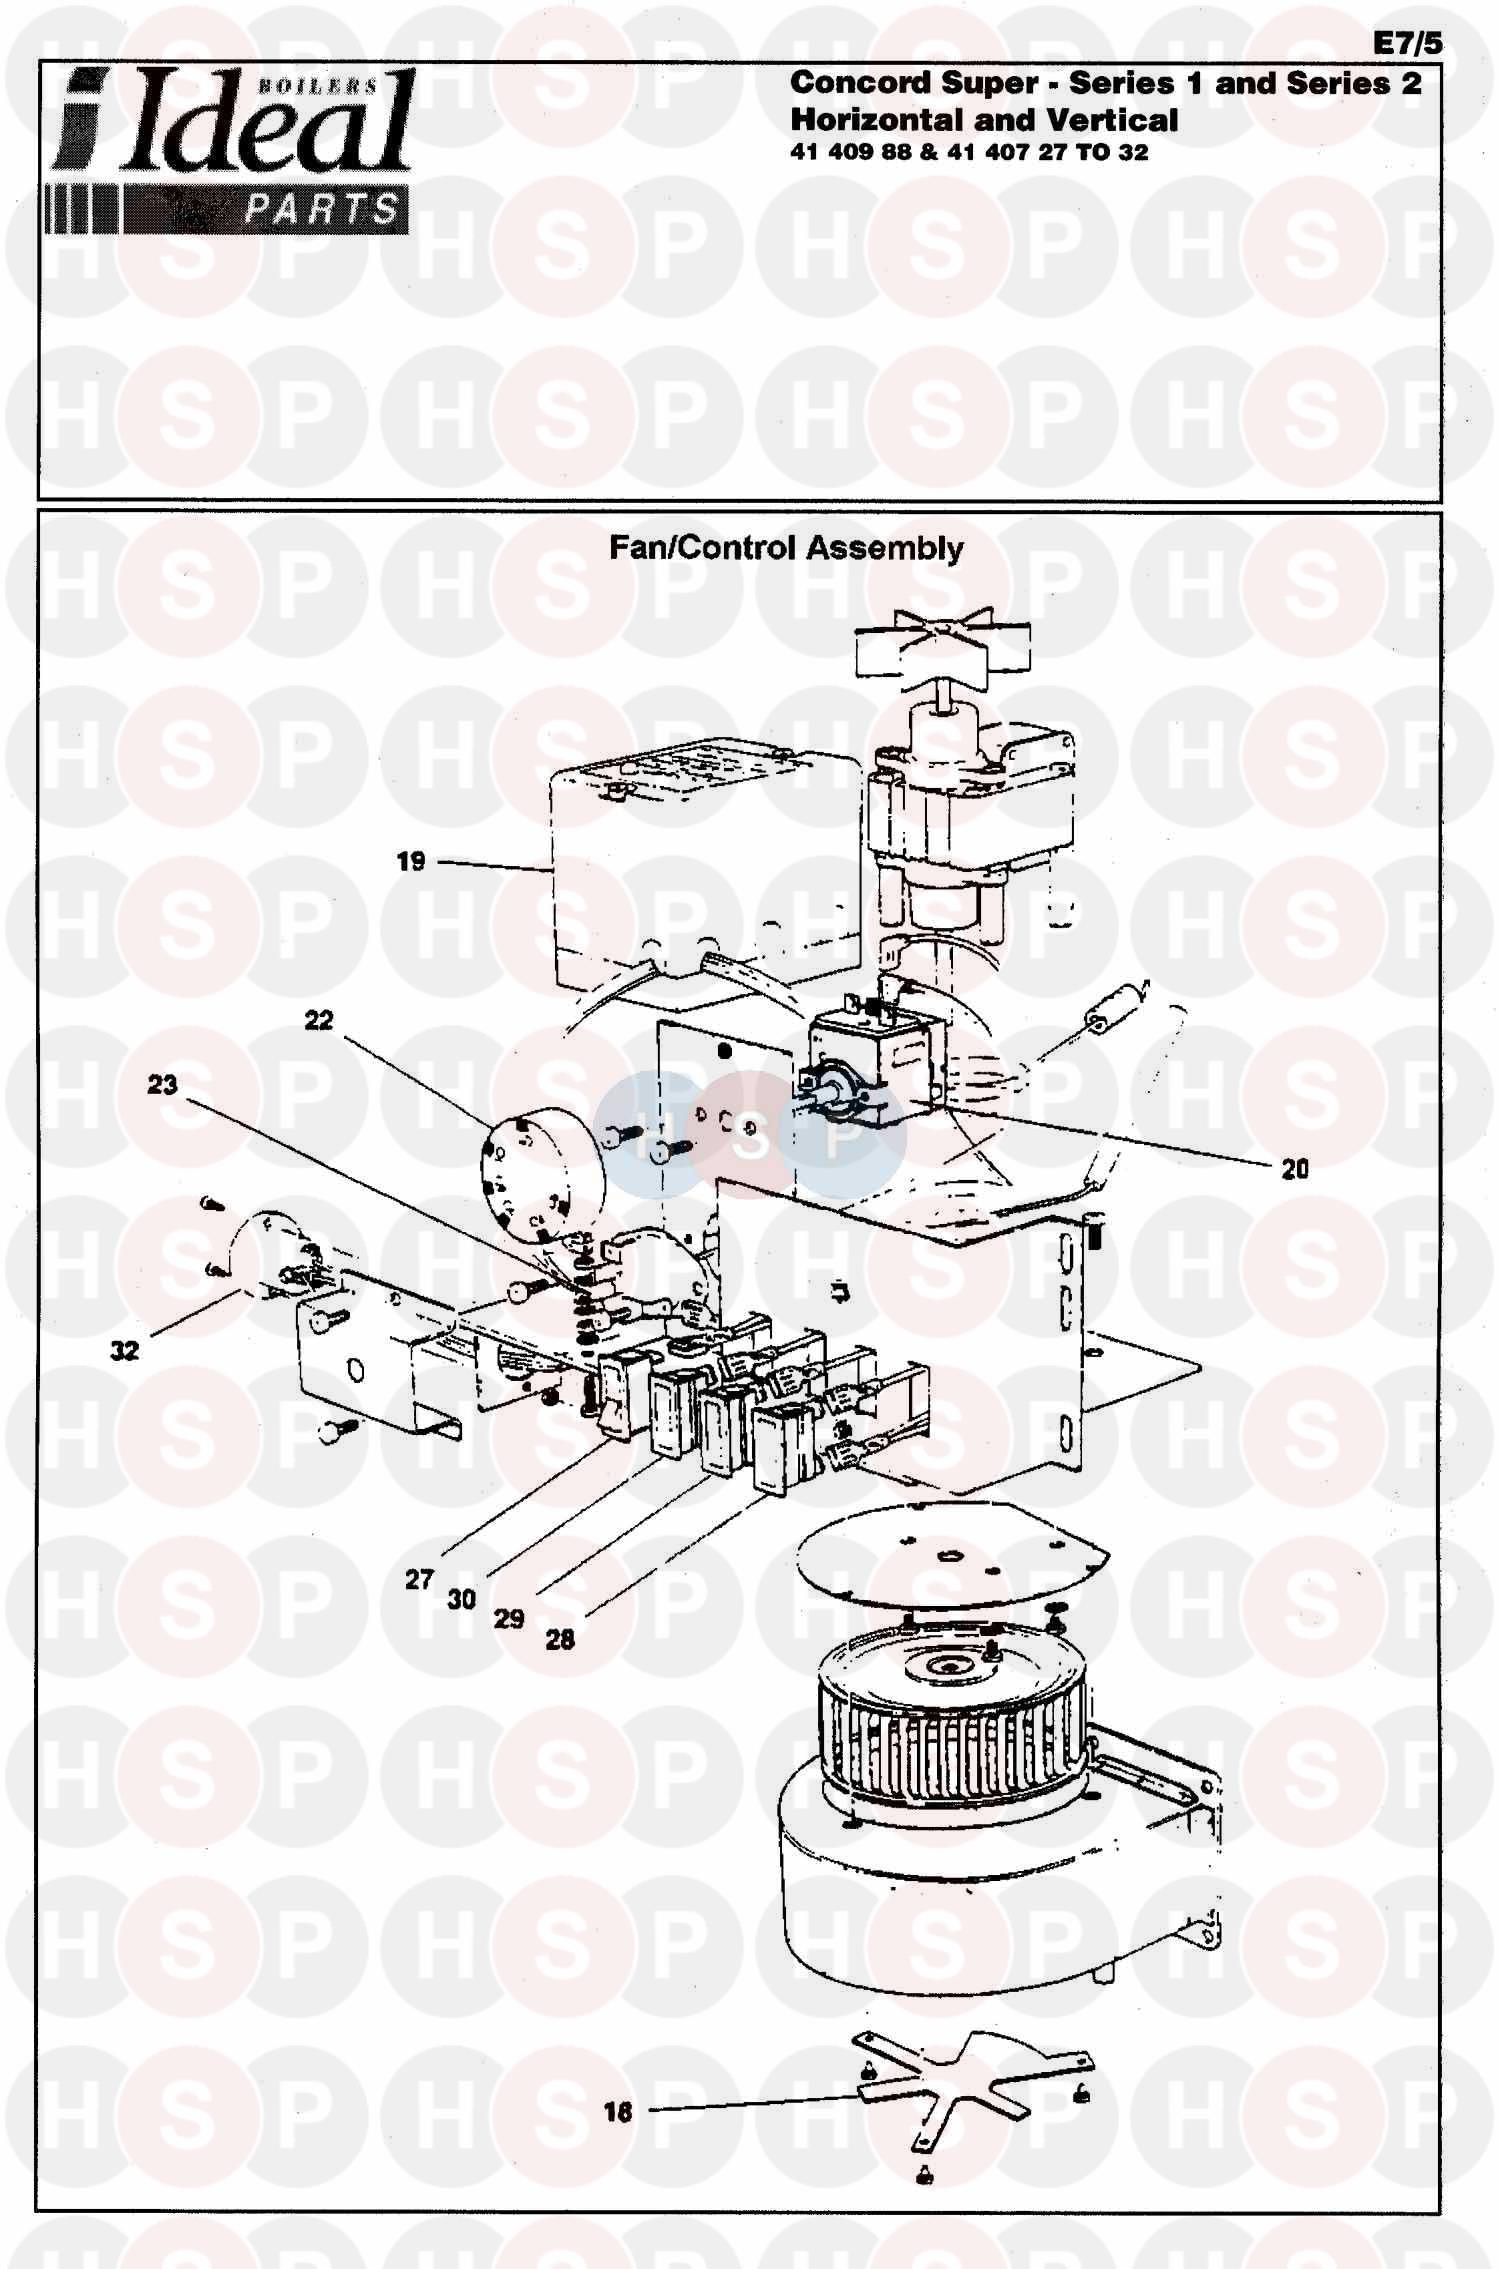 Ideal CONCORD SUPER 50 SERIES 2 (BOILER ASSEMBLY 2